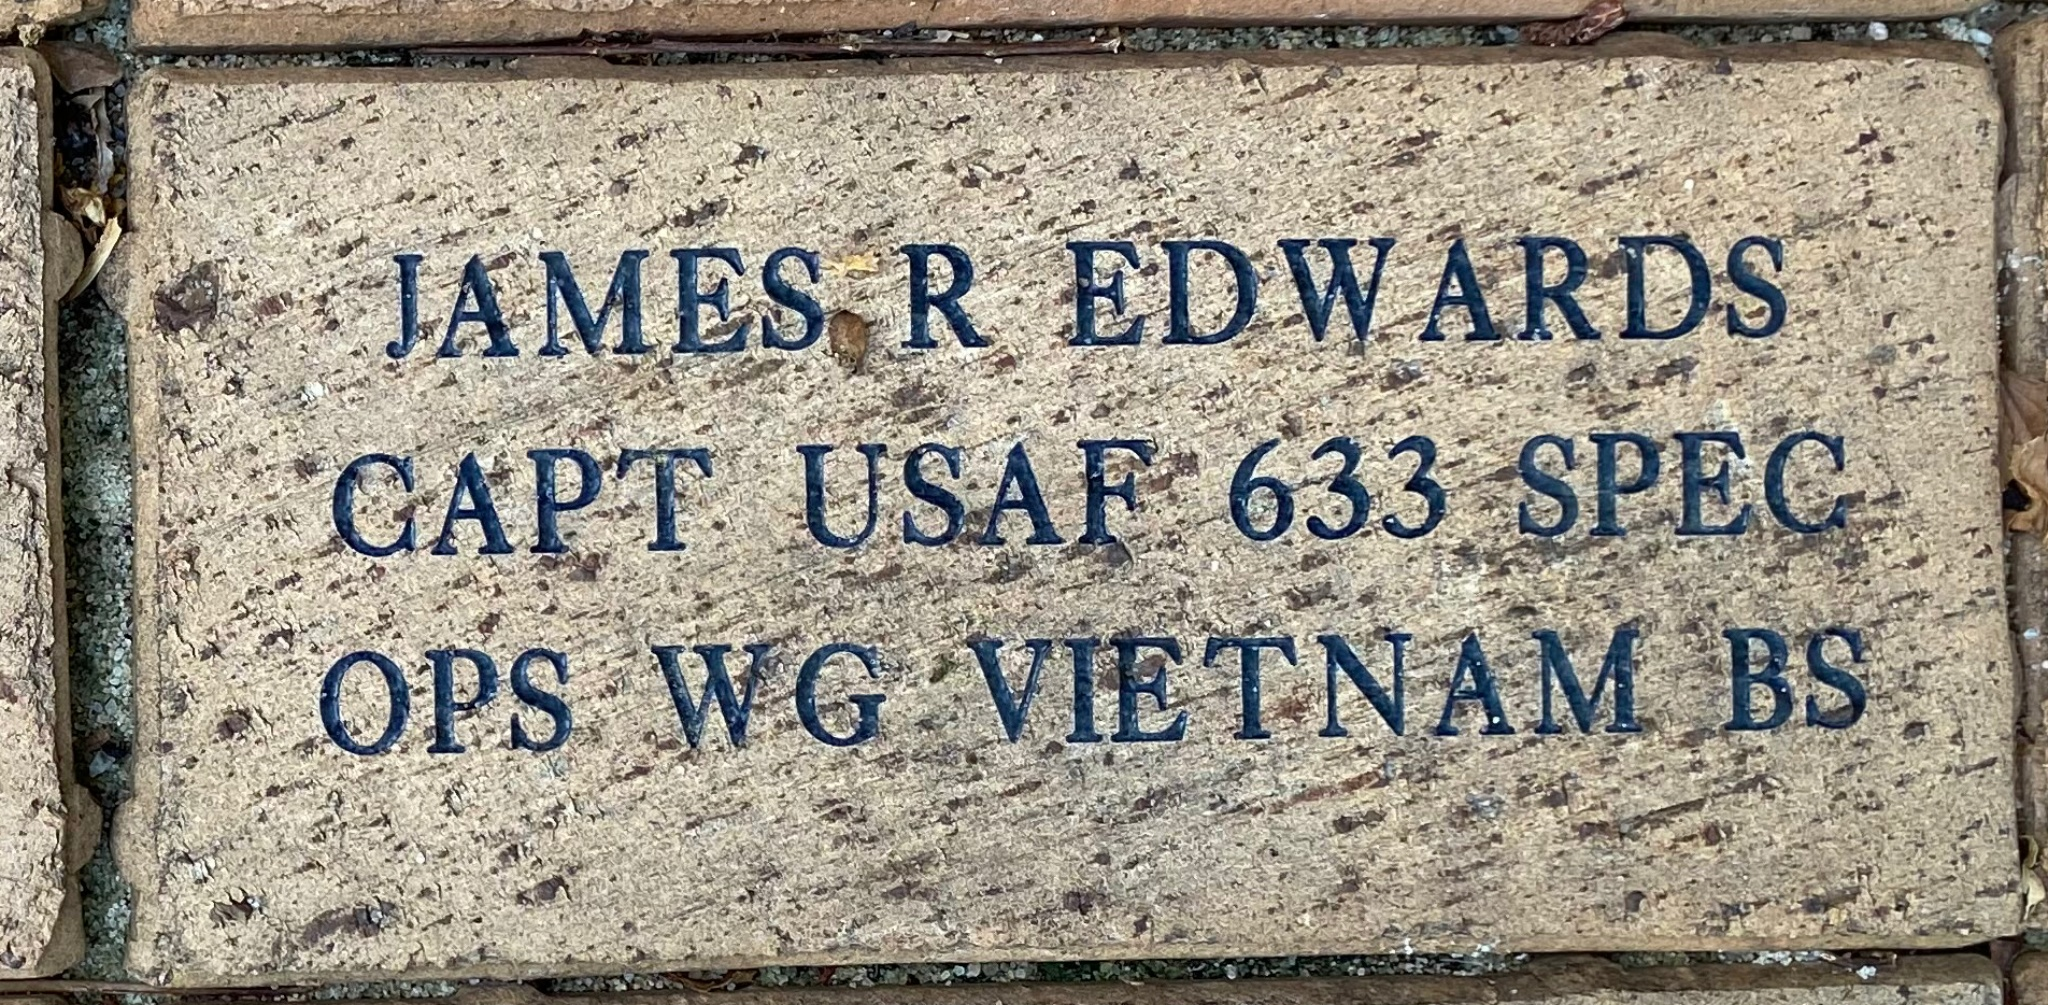 JAMES R EDWARDS CAPT USAF 633 SPEC OPS WG VIETNAM BS